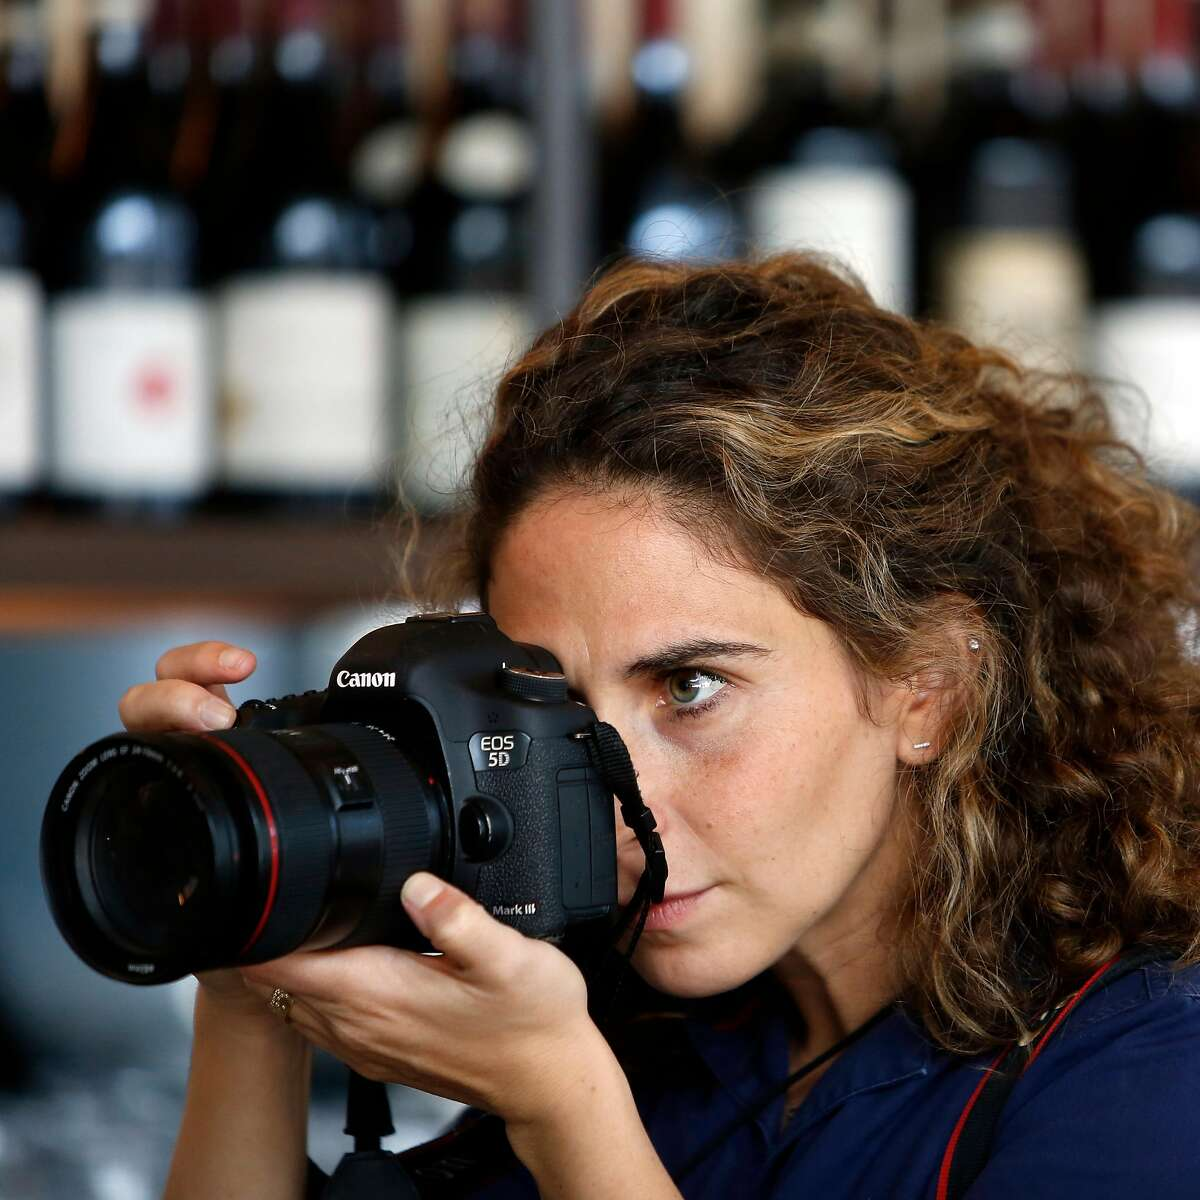 San Francisco Chronicle staff photographer Gabrielle Lurie photographs at the Corridor Restaurant on 100 Van Ness Ave for a story about how businesses are impacted by corporate cafeterias on Tuesday, July 24, 2018 in San Francisco, Calif.